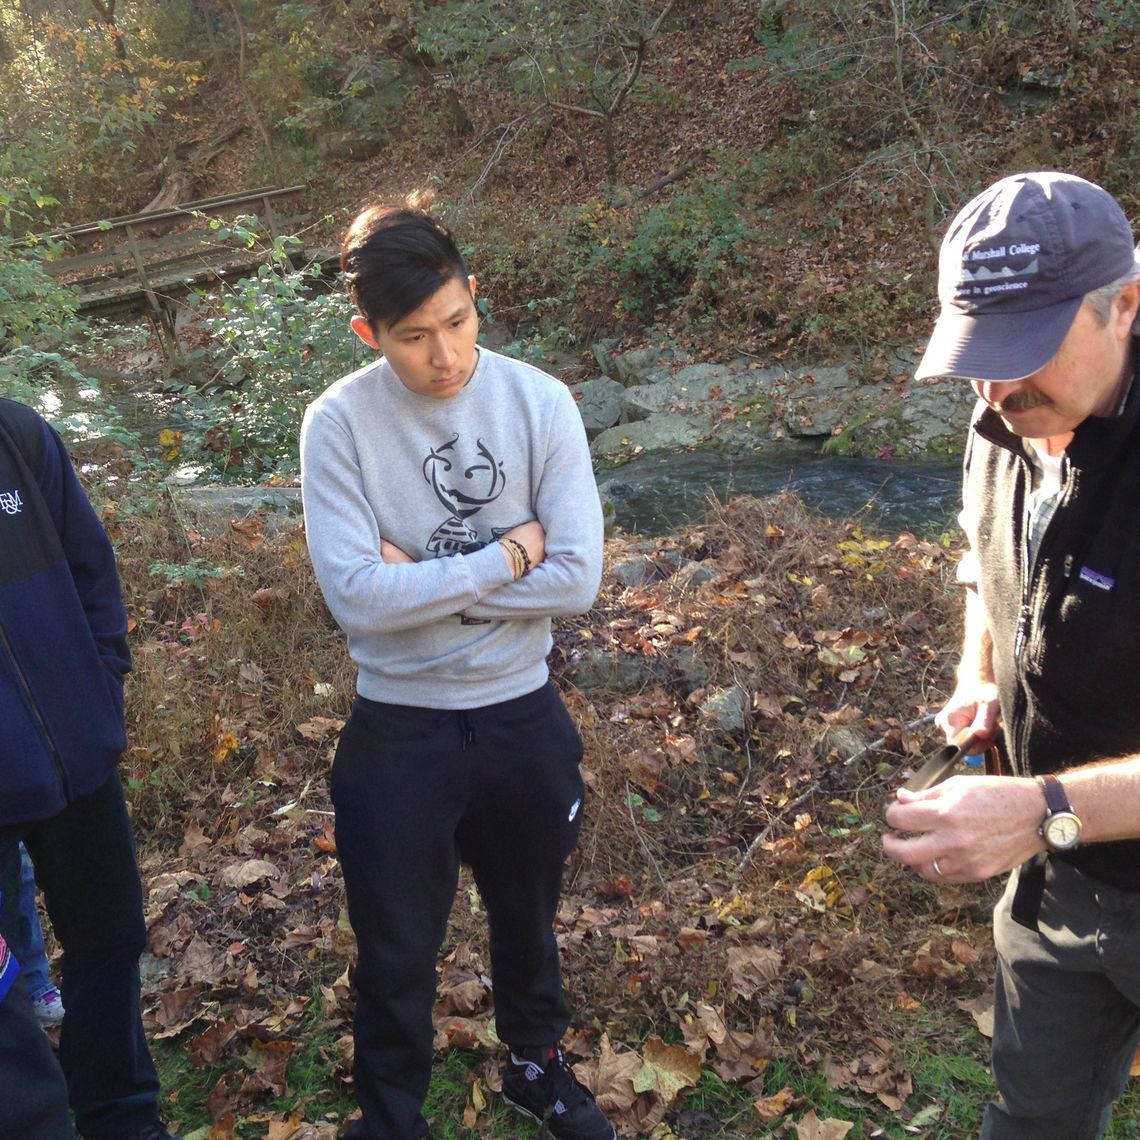 Studying soil samples at Millport Conservancy